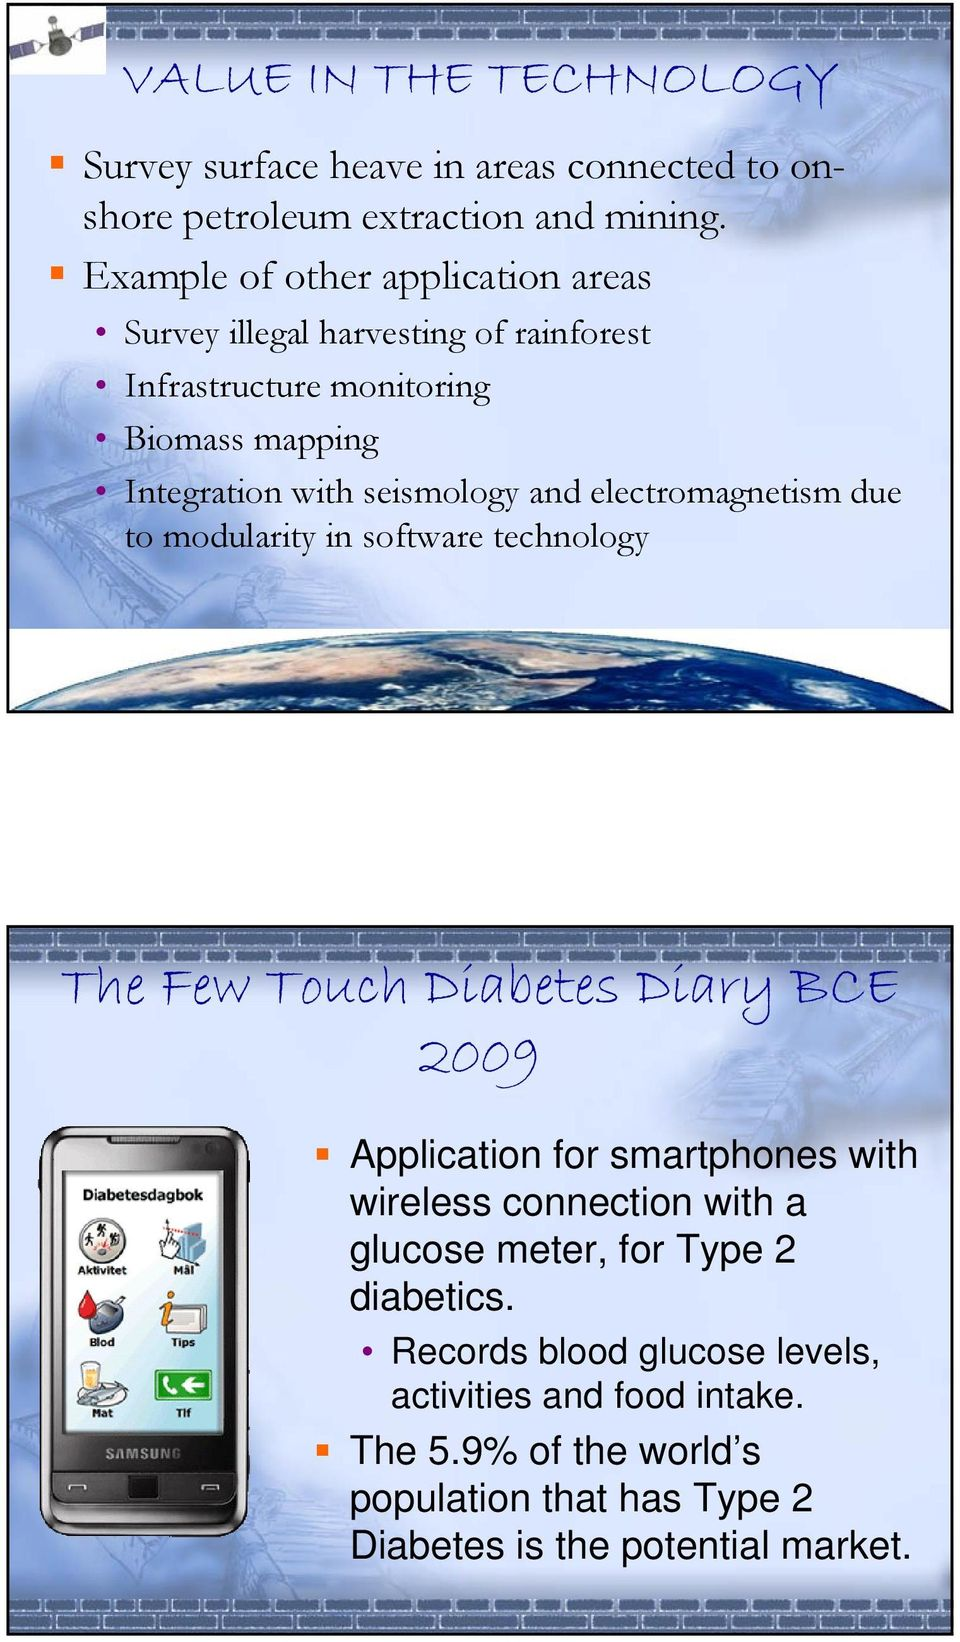 and electromagnetism due to modularity in software technology The Few Touch Diabetes Diary BCE 2009 Application for smartphones with wireless